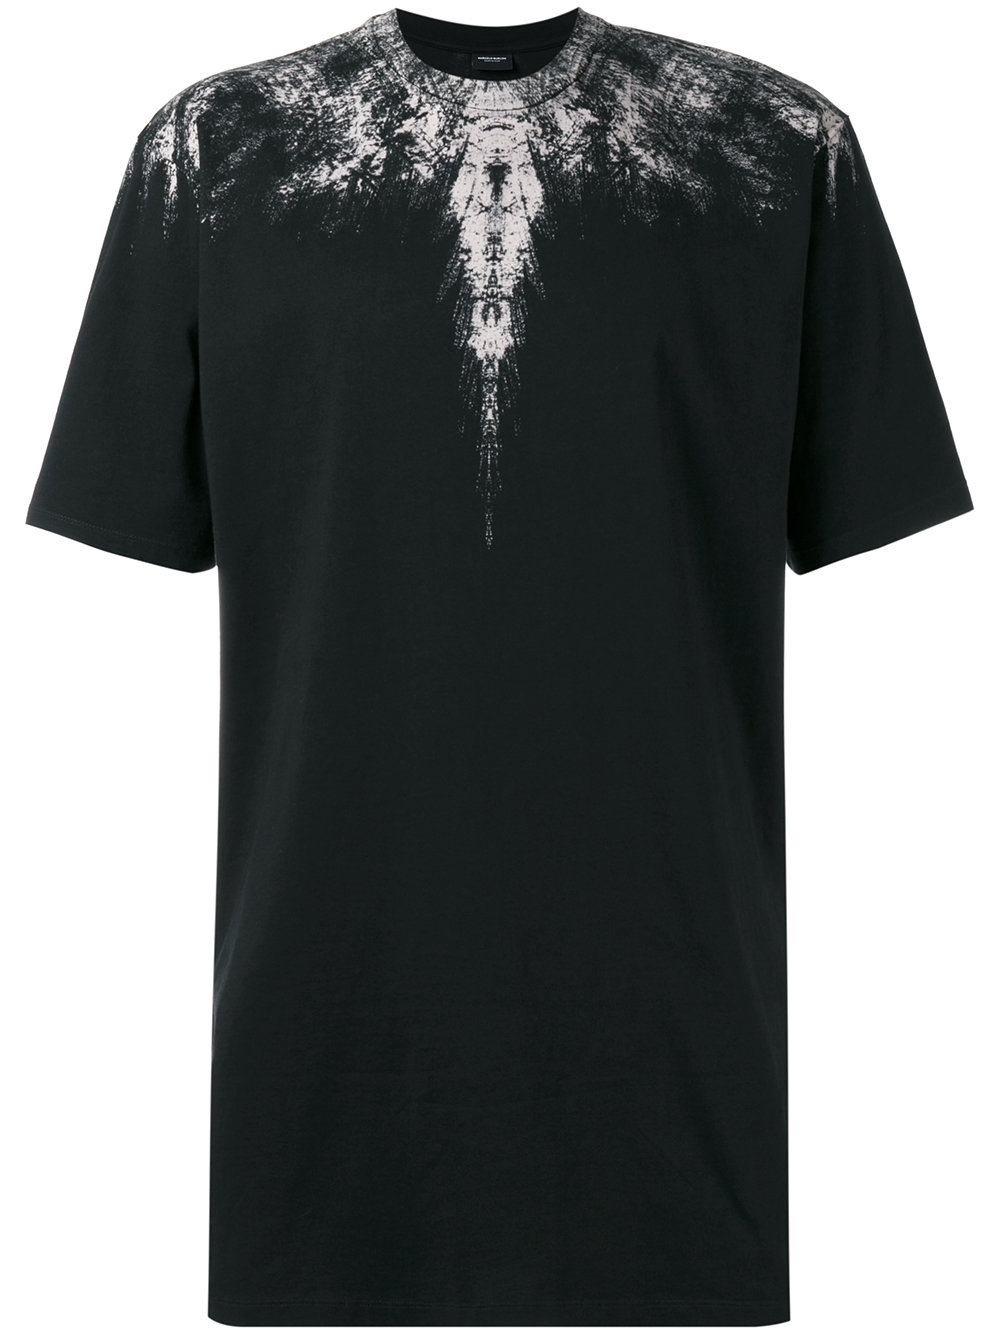 MARCELO BURLON WOMAN T-SHIRT